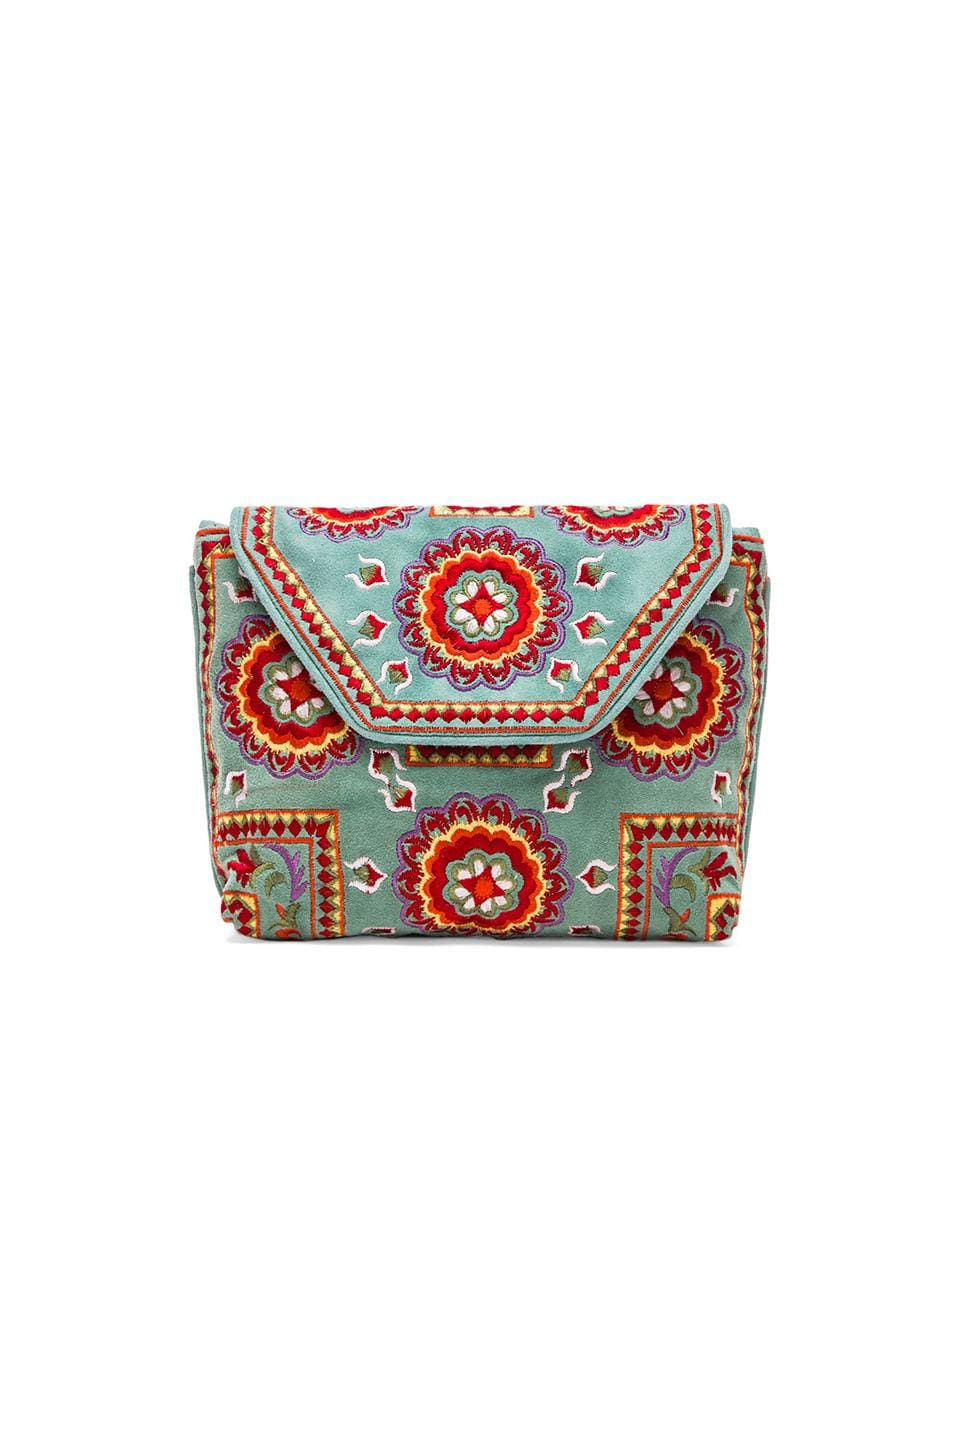 Antik Batik Brada Clutch in Turquoise